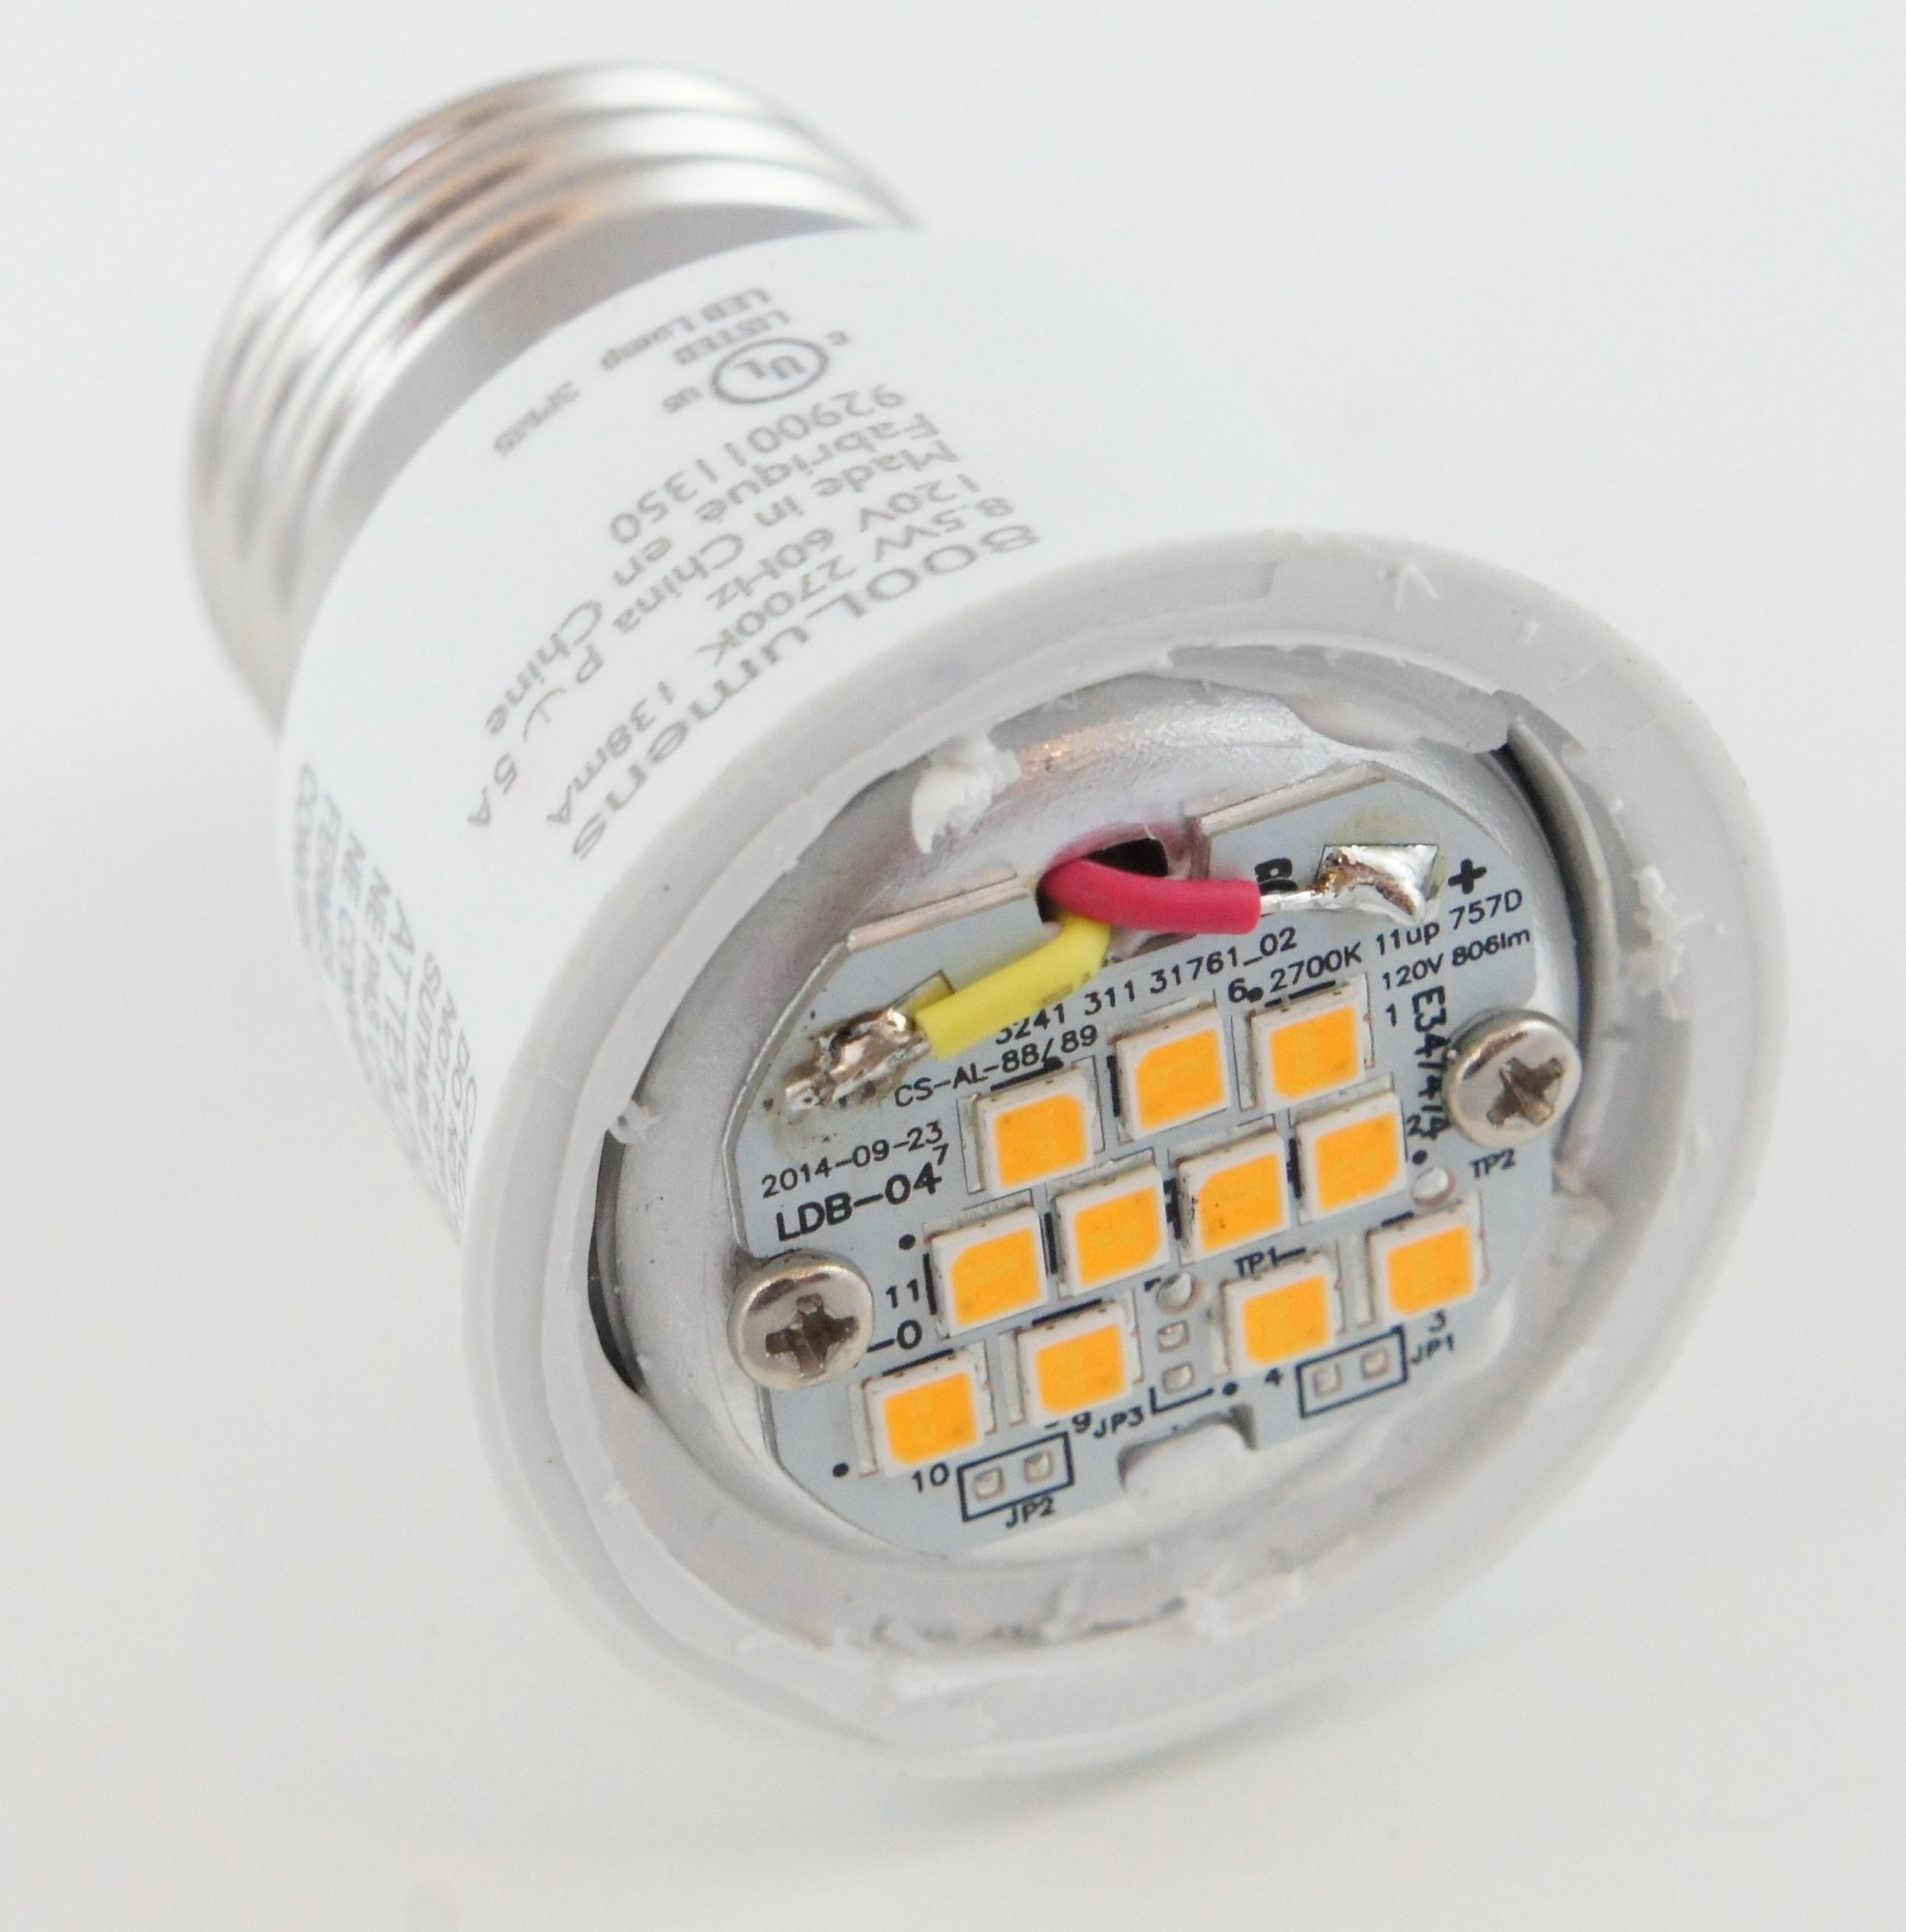 2 Ballast With 4 Lamps Wiring Diagram The Race To The Bottom Led Bulbs And Dfm News